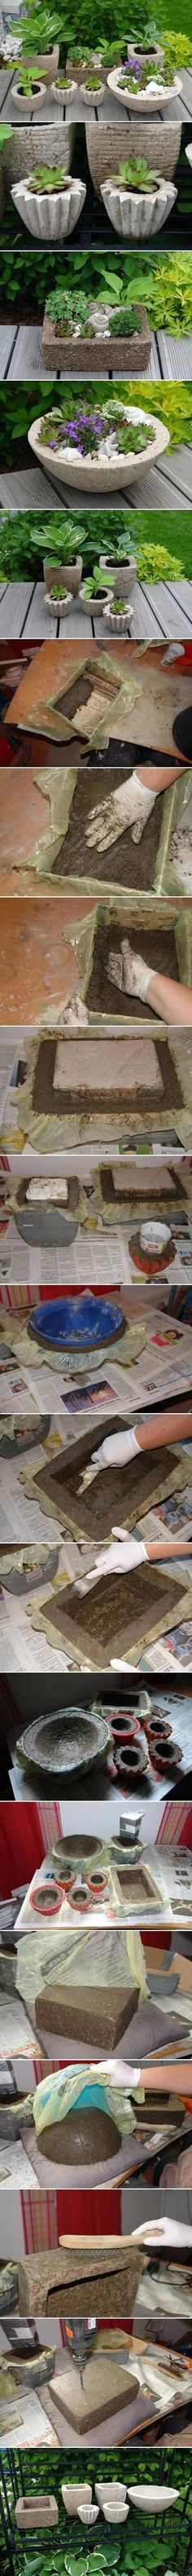 DIY Variety of Cement Planters DIY Projects / UsefulDIY.com (Step Design Diy Projects)